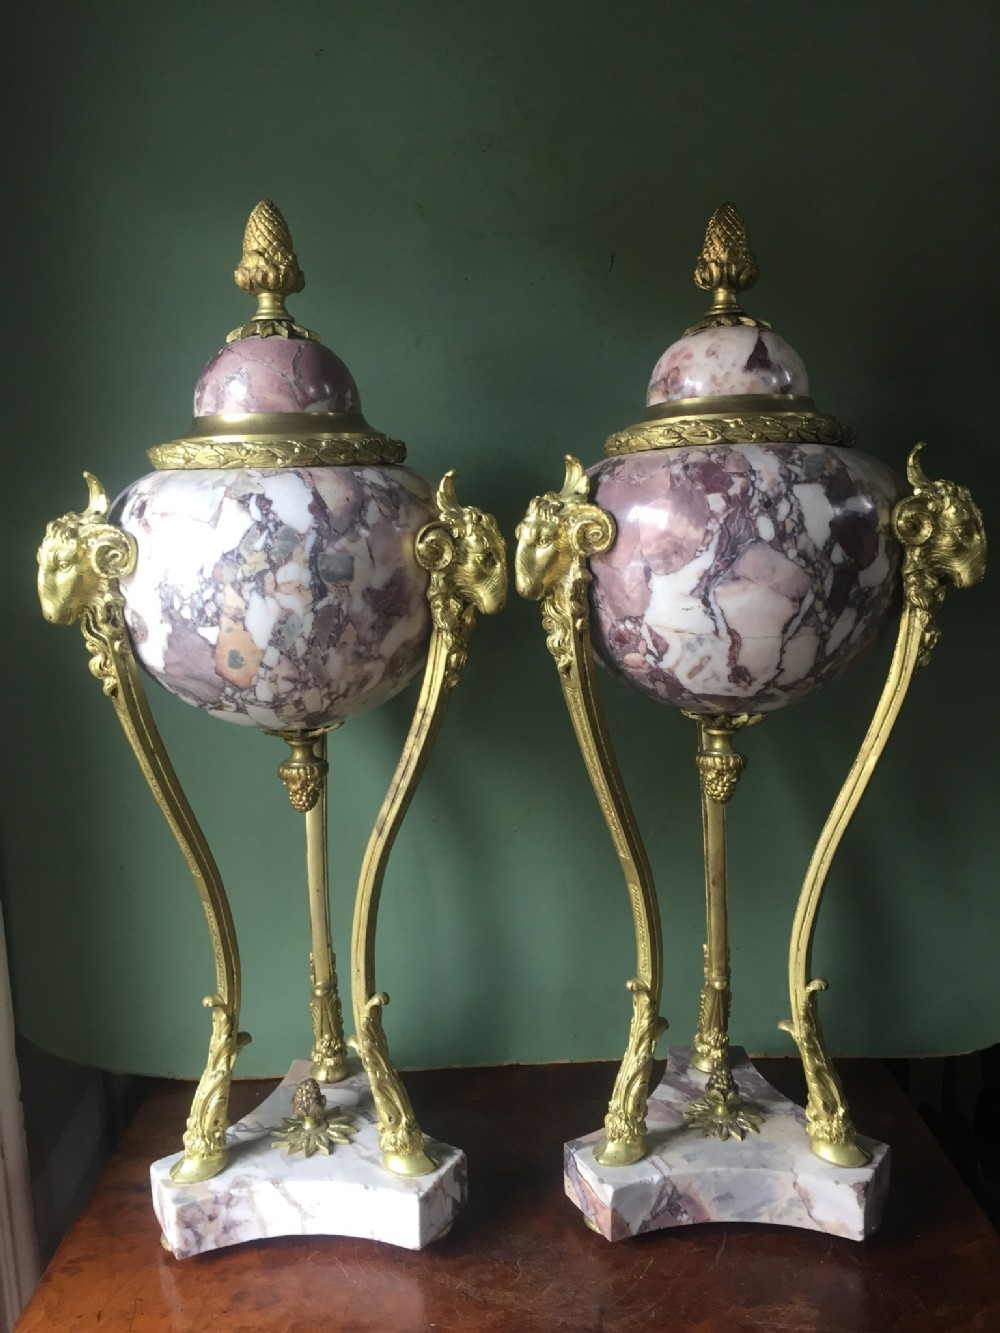 large pair of late c19th early c20th french marble 'breche violette' ormolumounted vases in the c18th neoclassical style